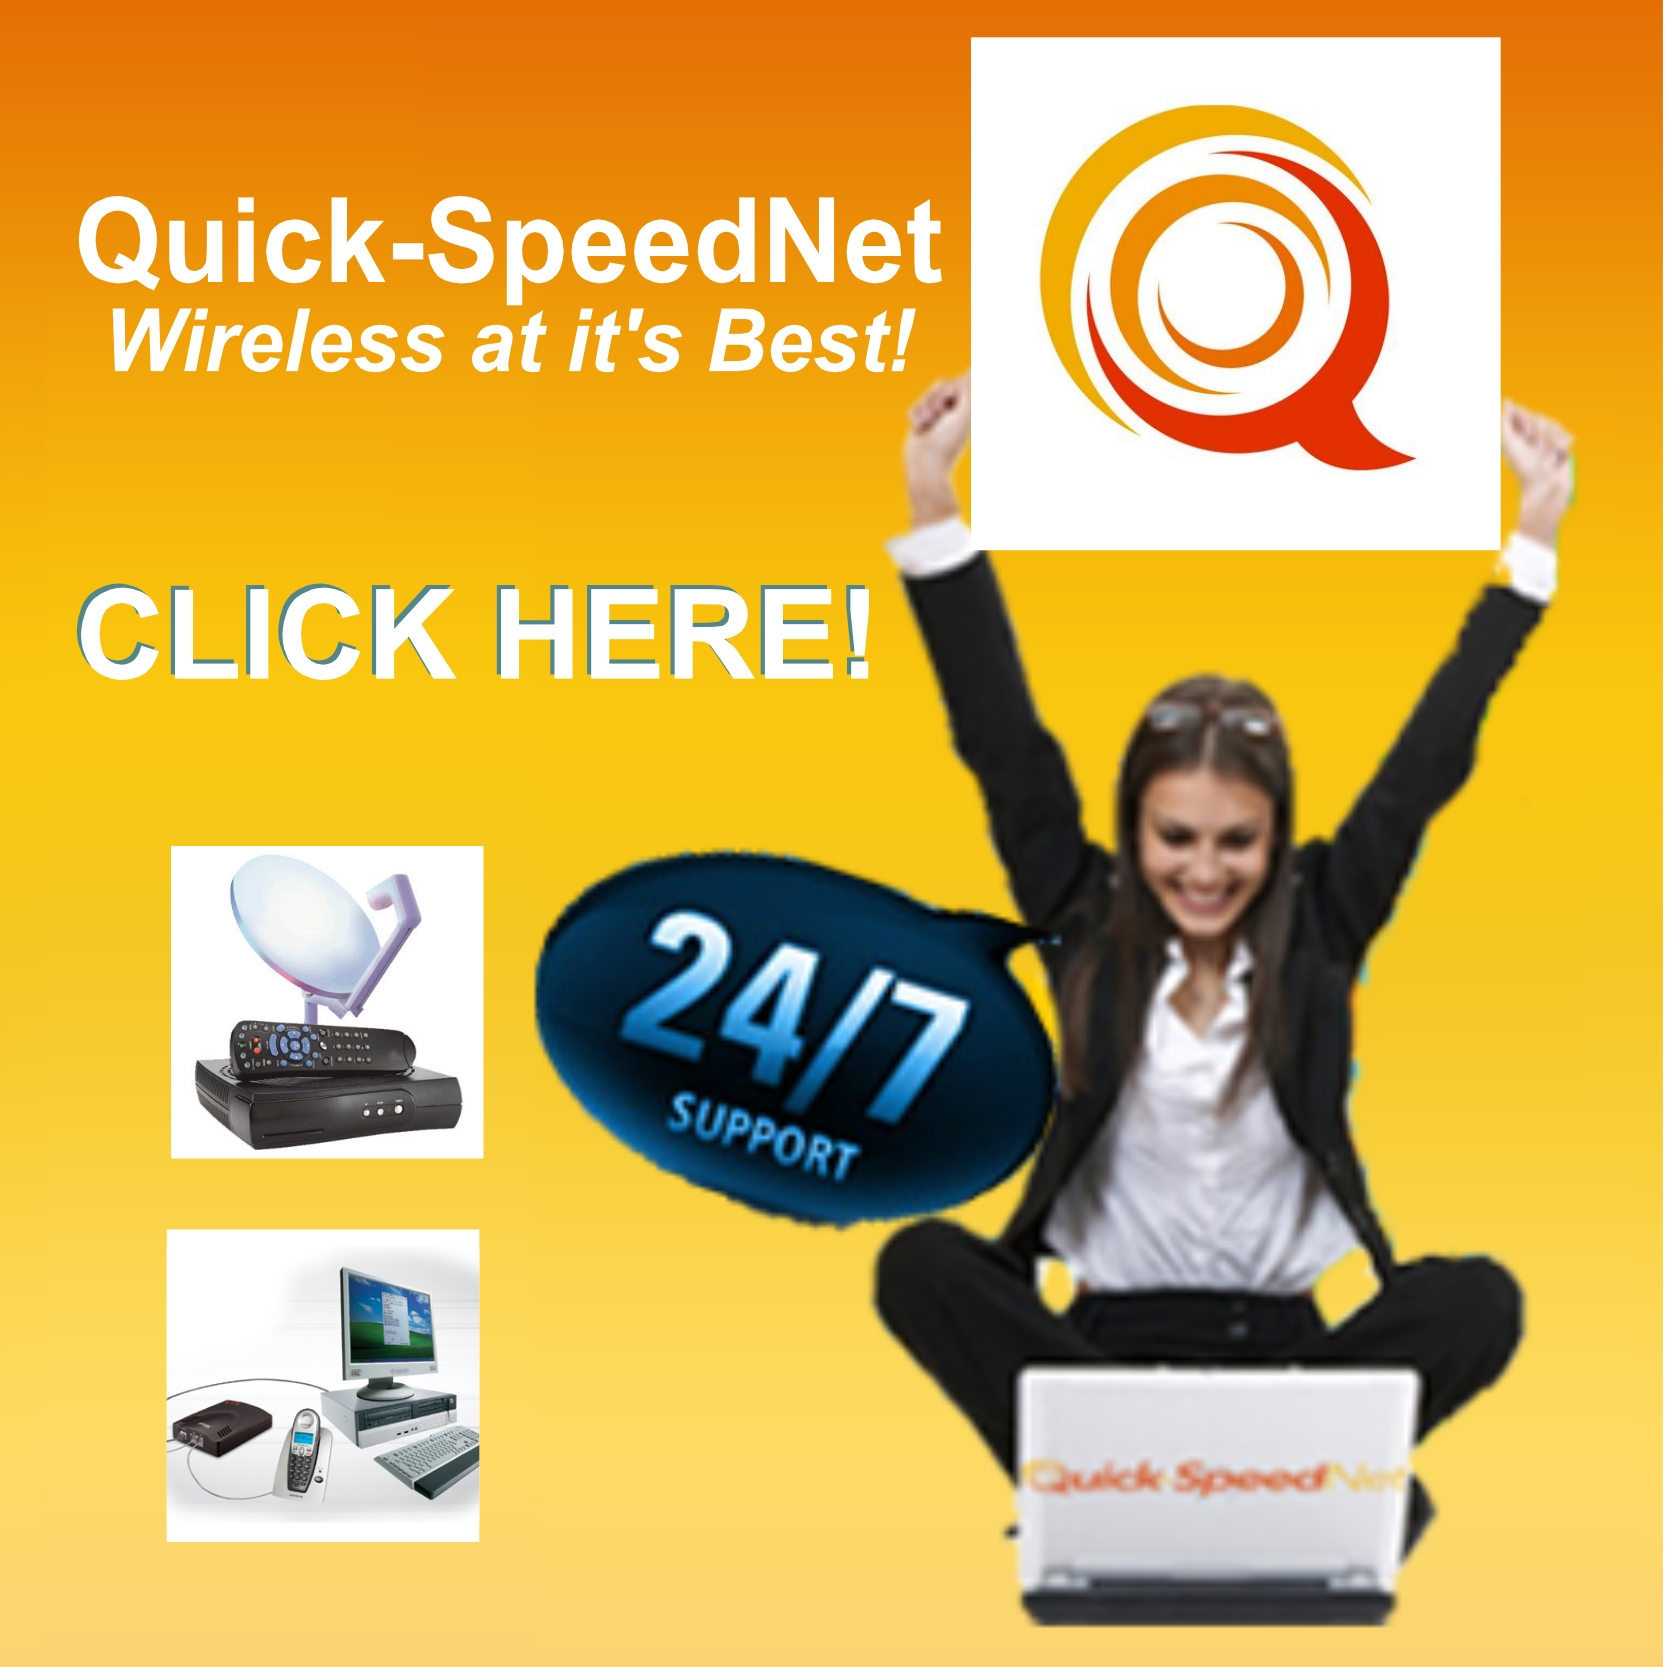 http://bajagoodlife.com/place/quick-speed-net/